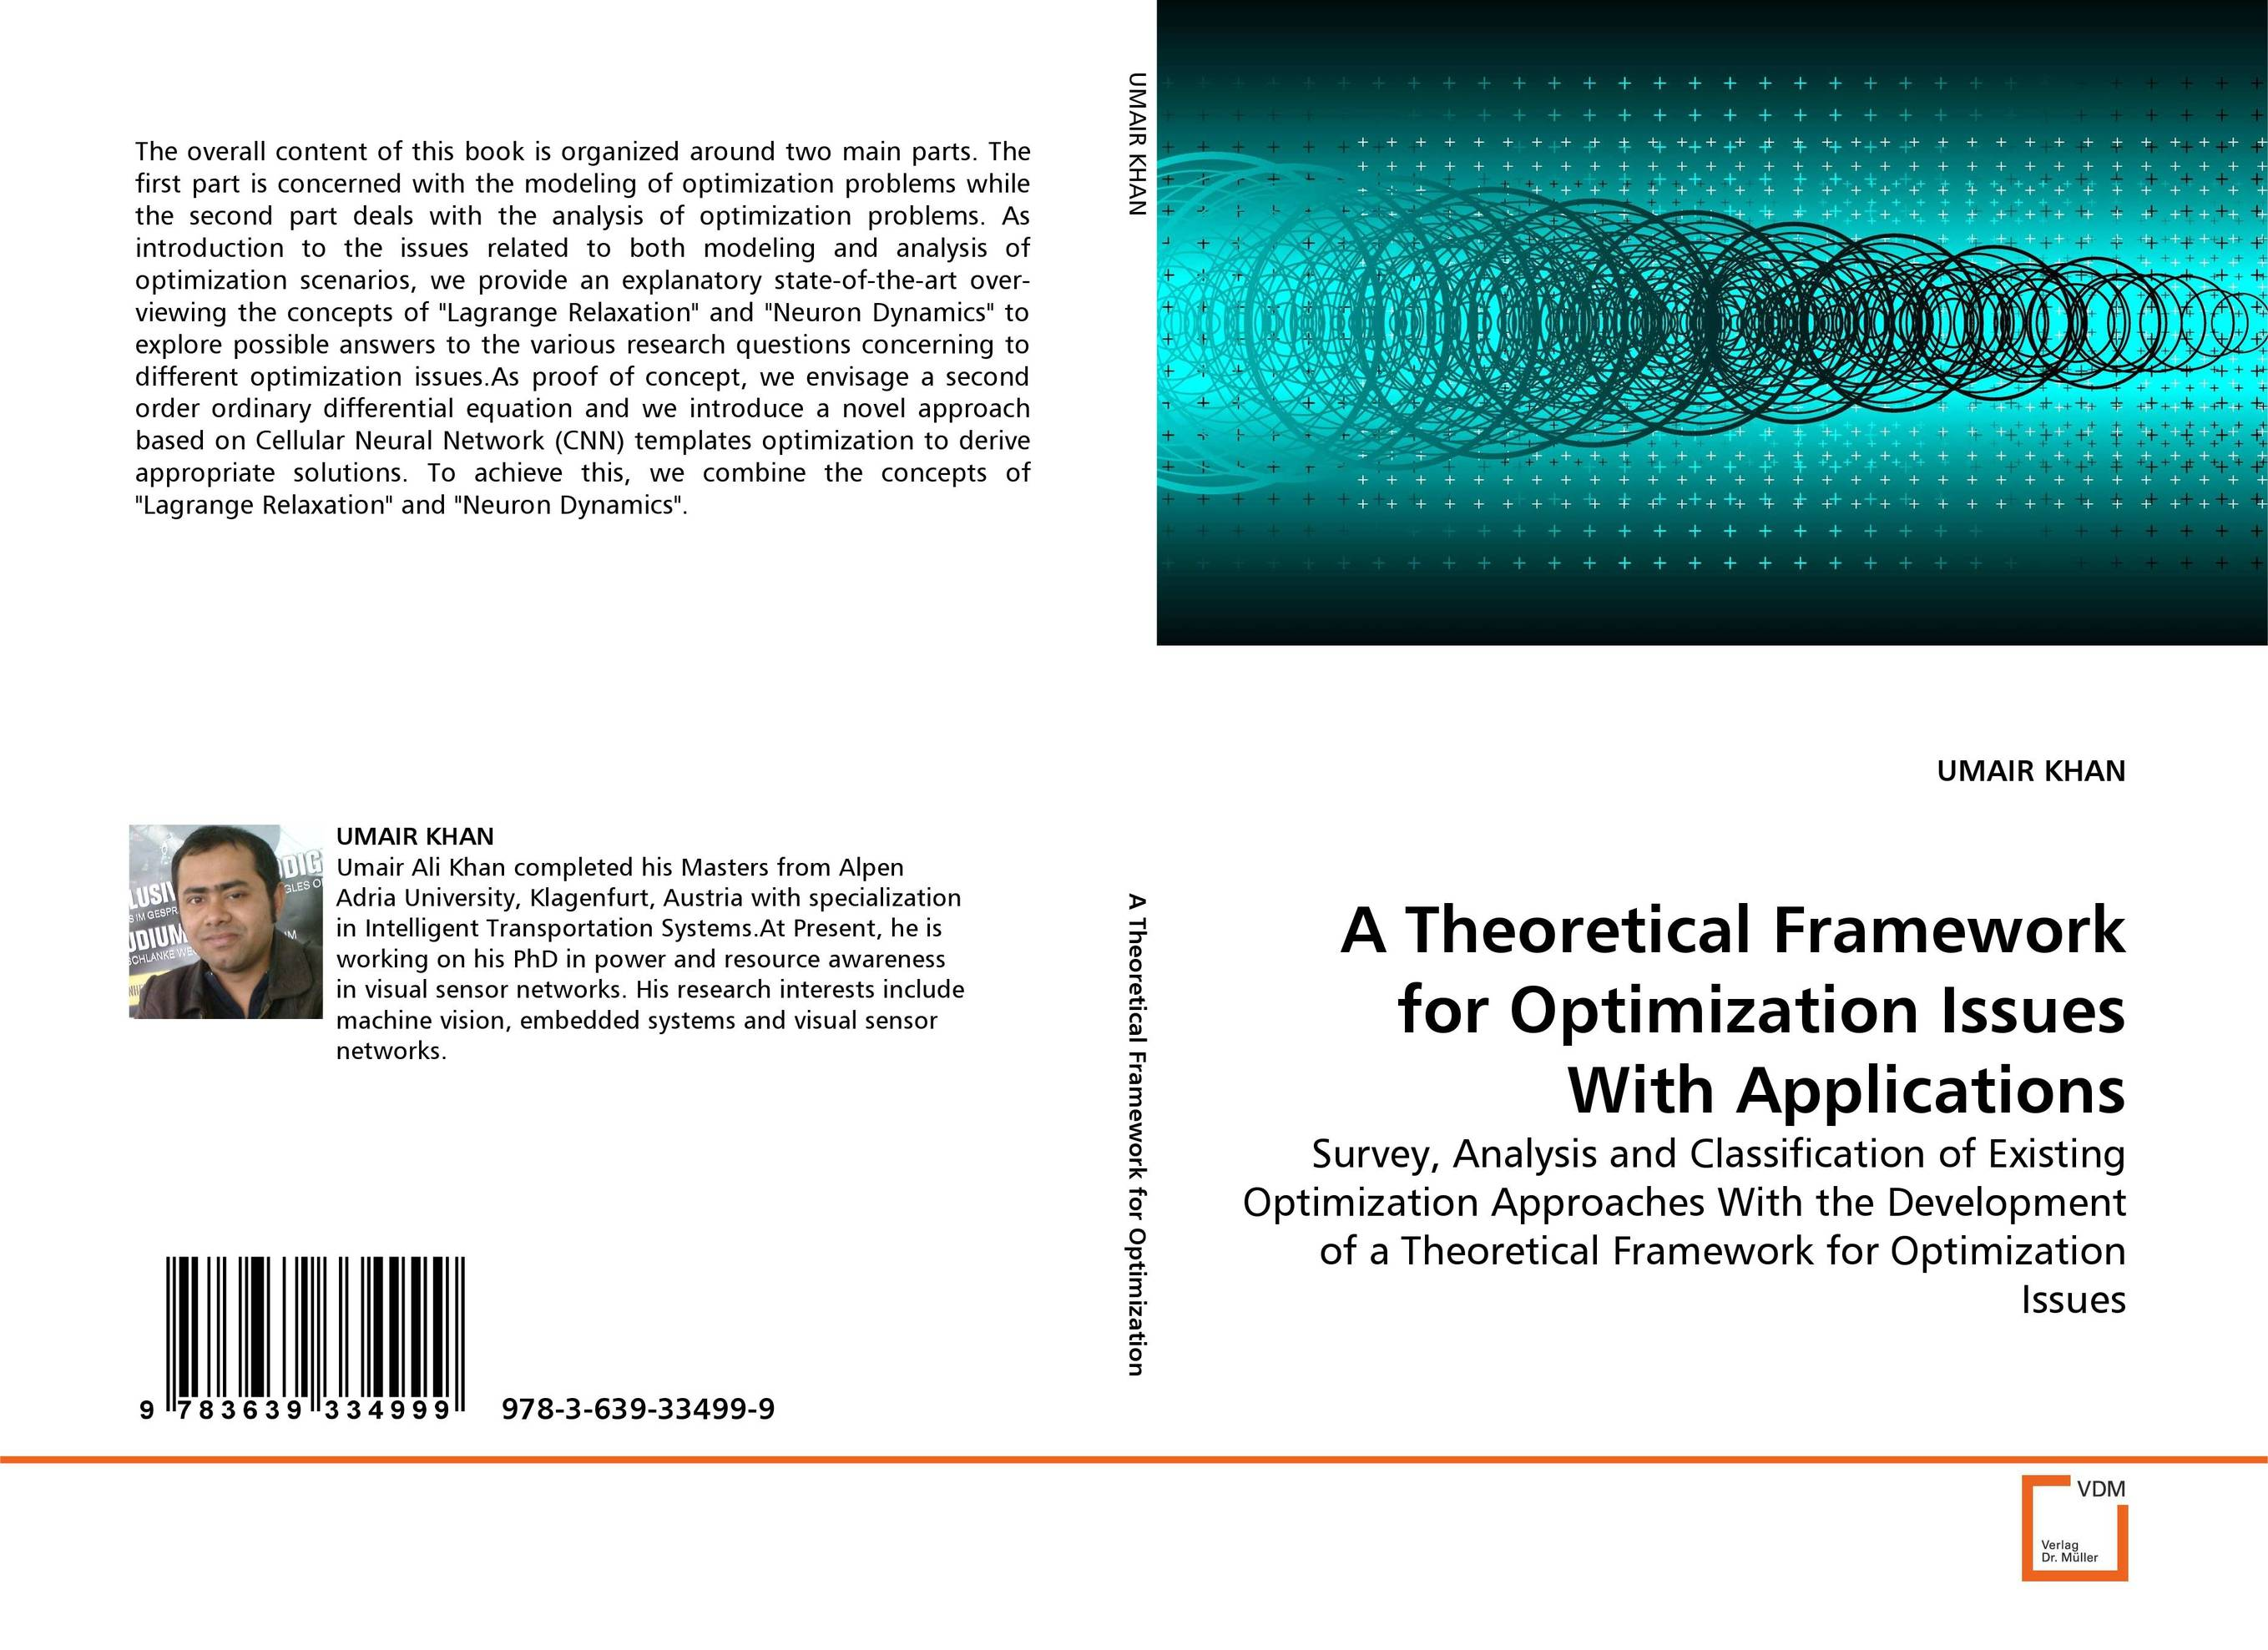 A Theoretical Framework for Optimization Issues With Applications benefit analysis of optimization models for network recovery design